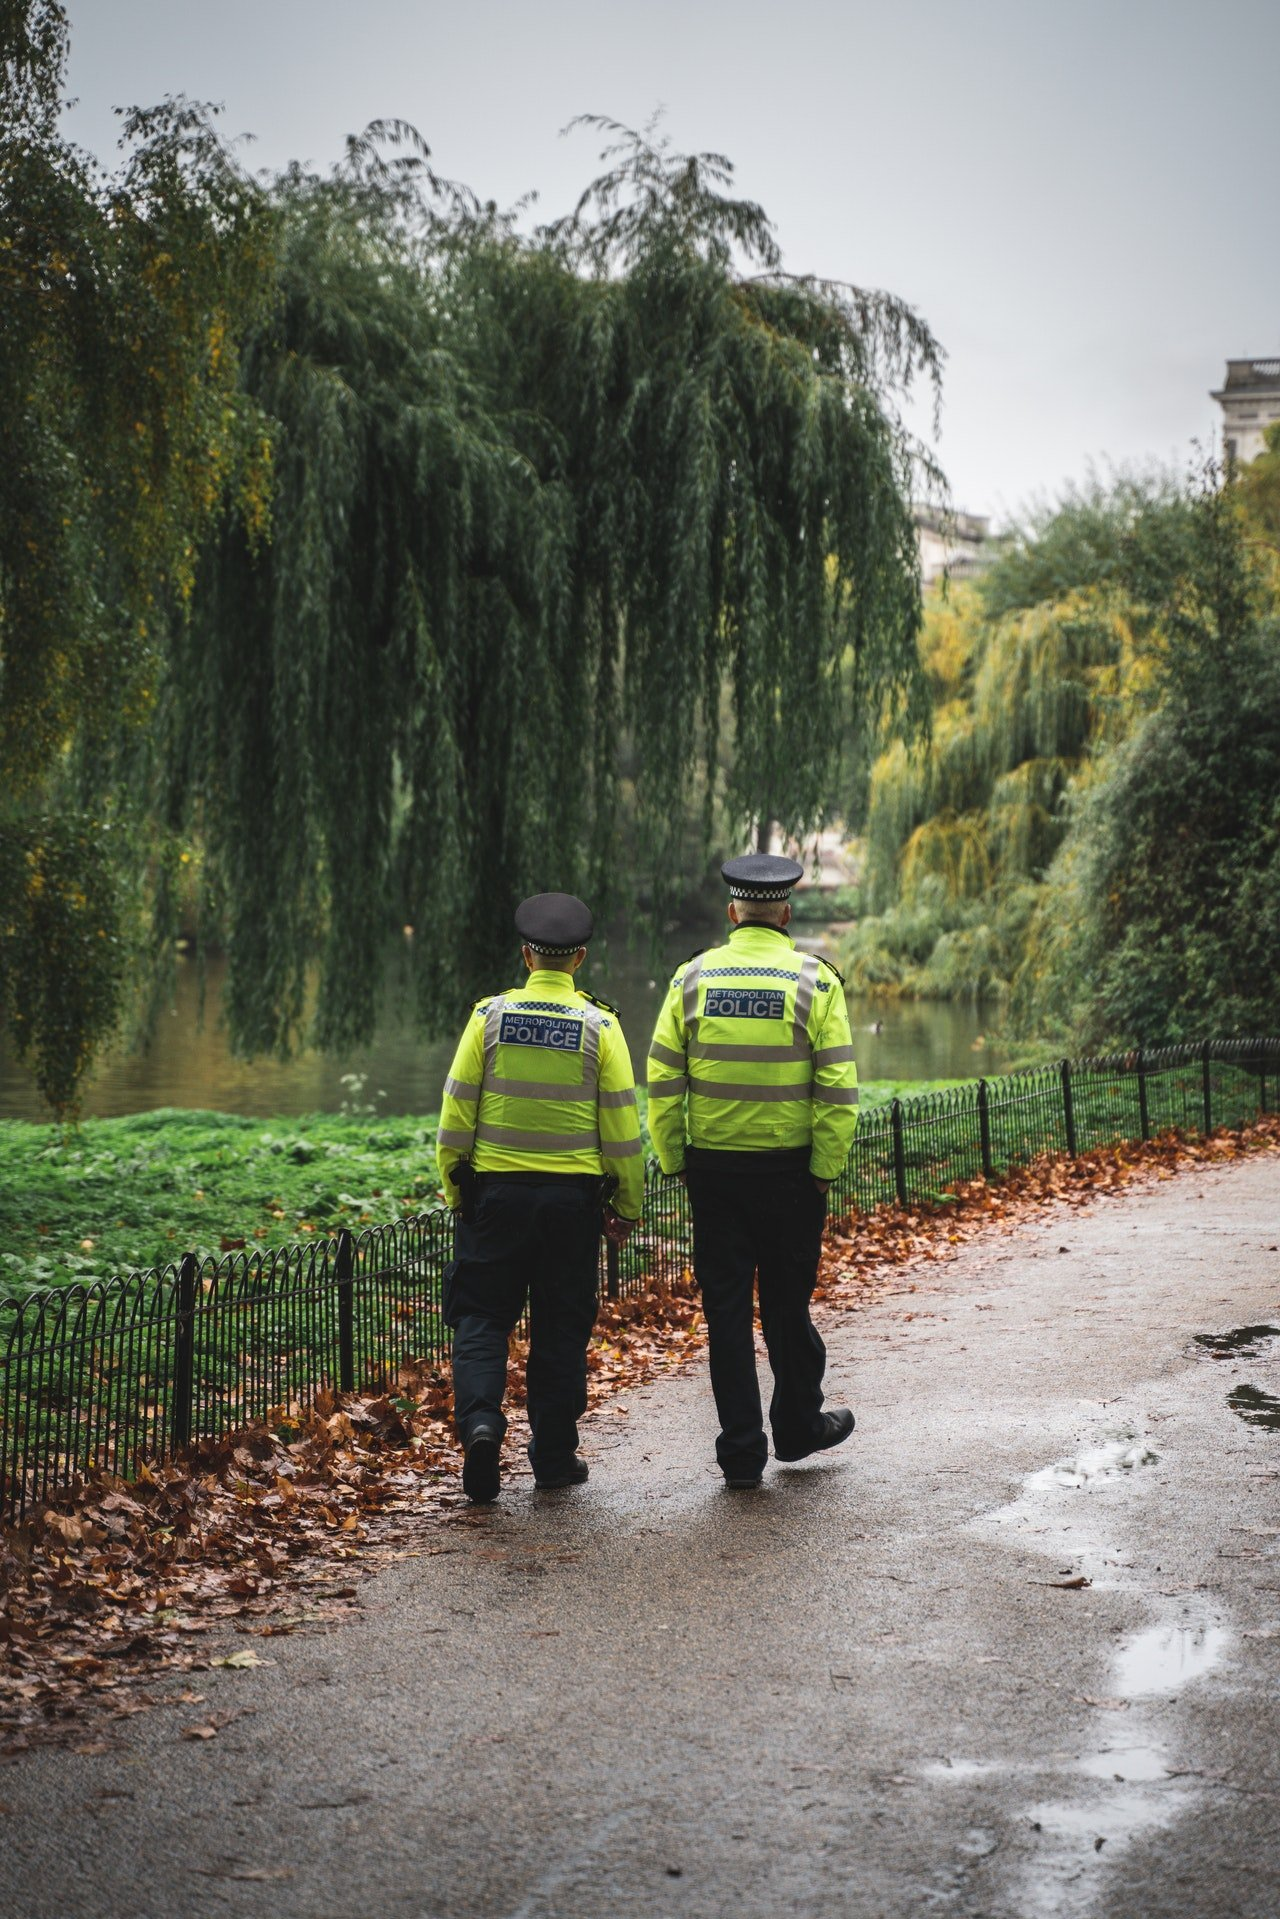 Two police officers walking down the road | Photo: Pexels